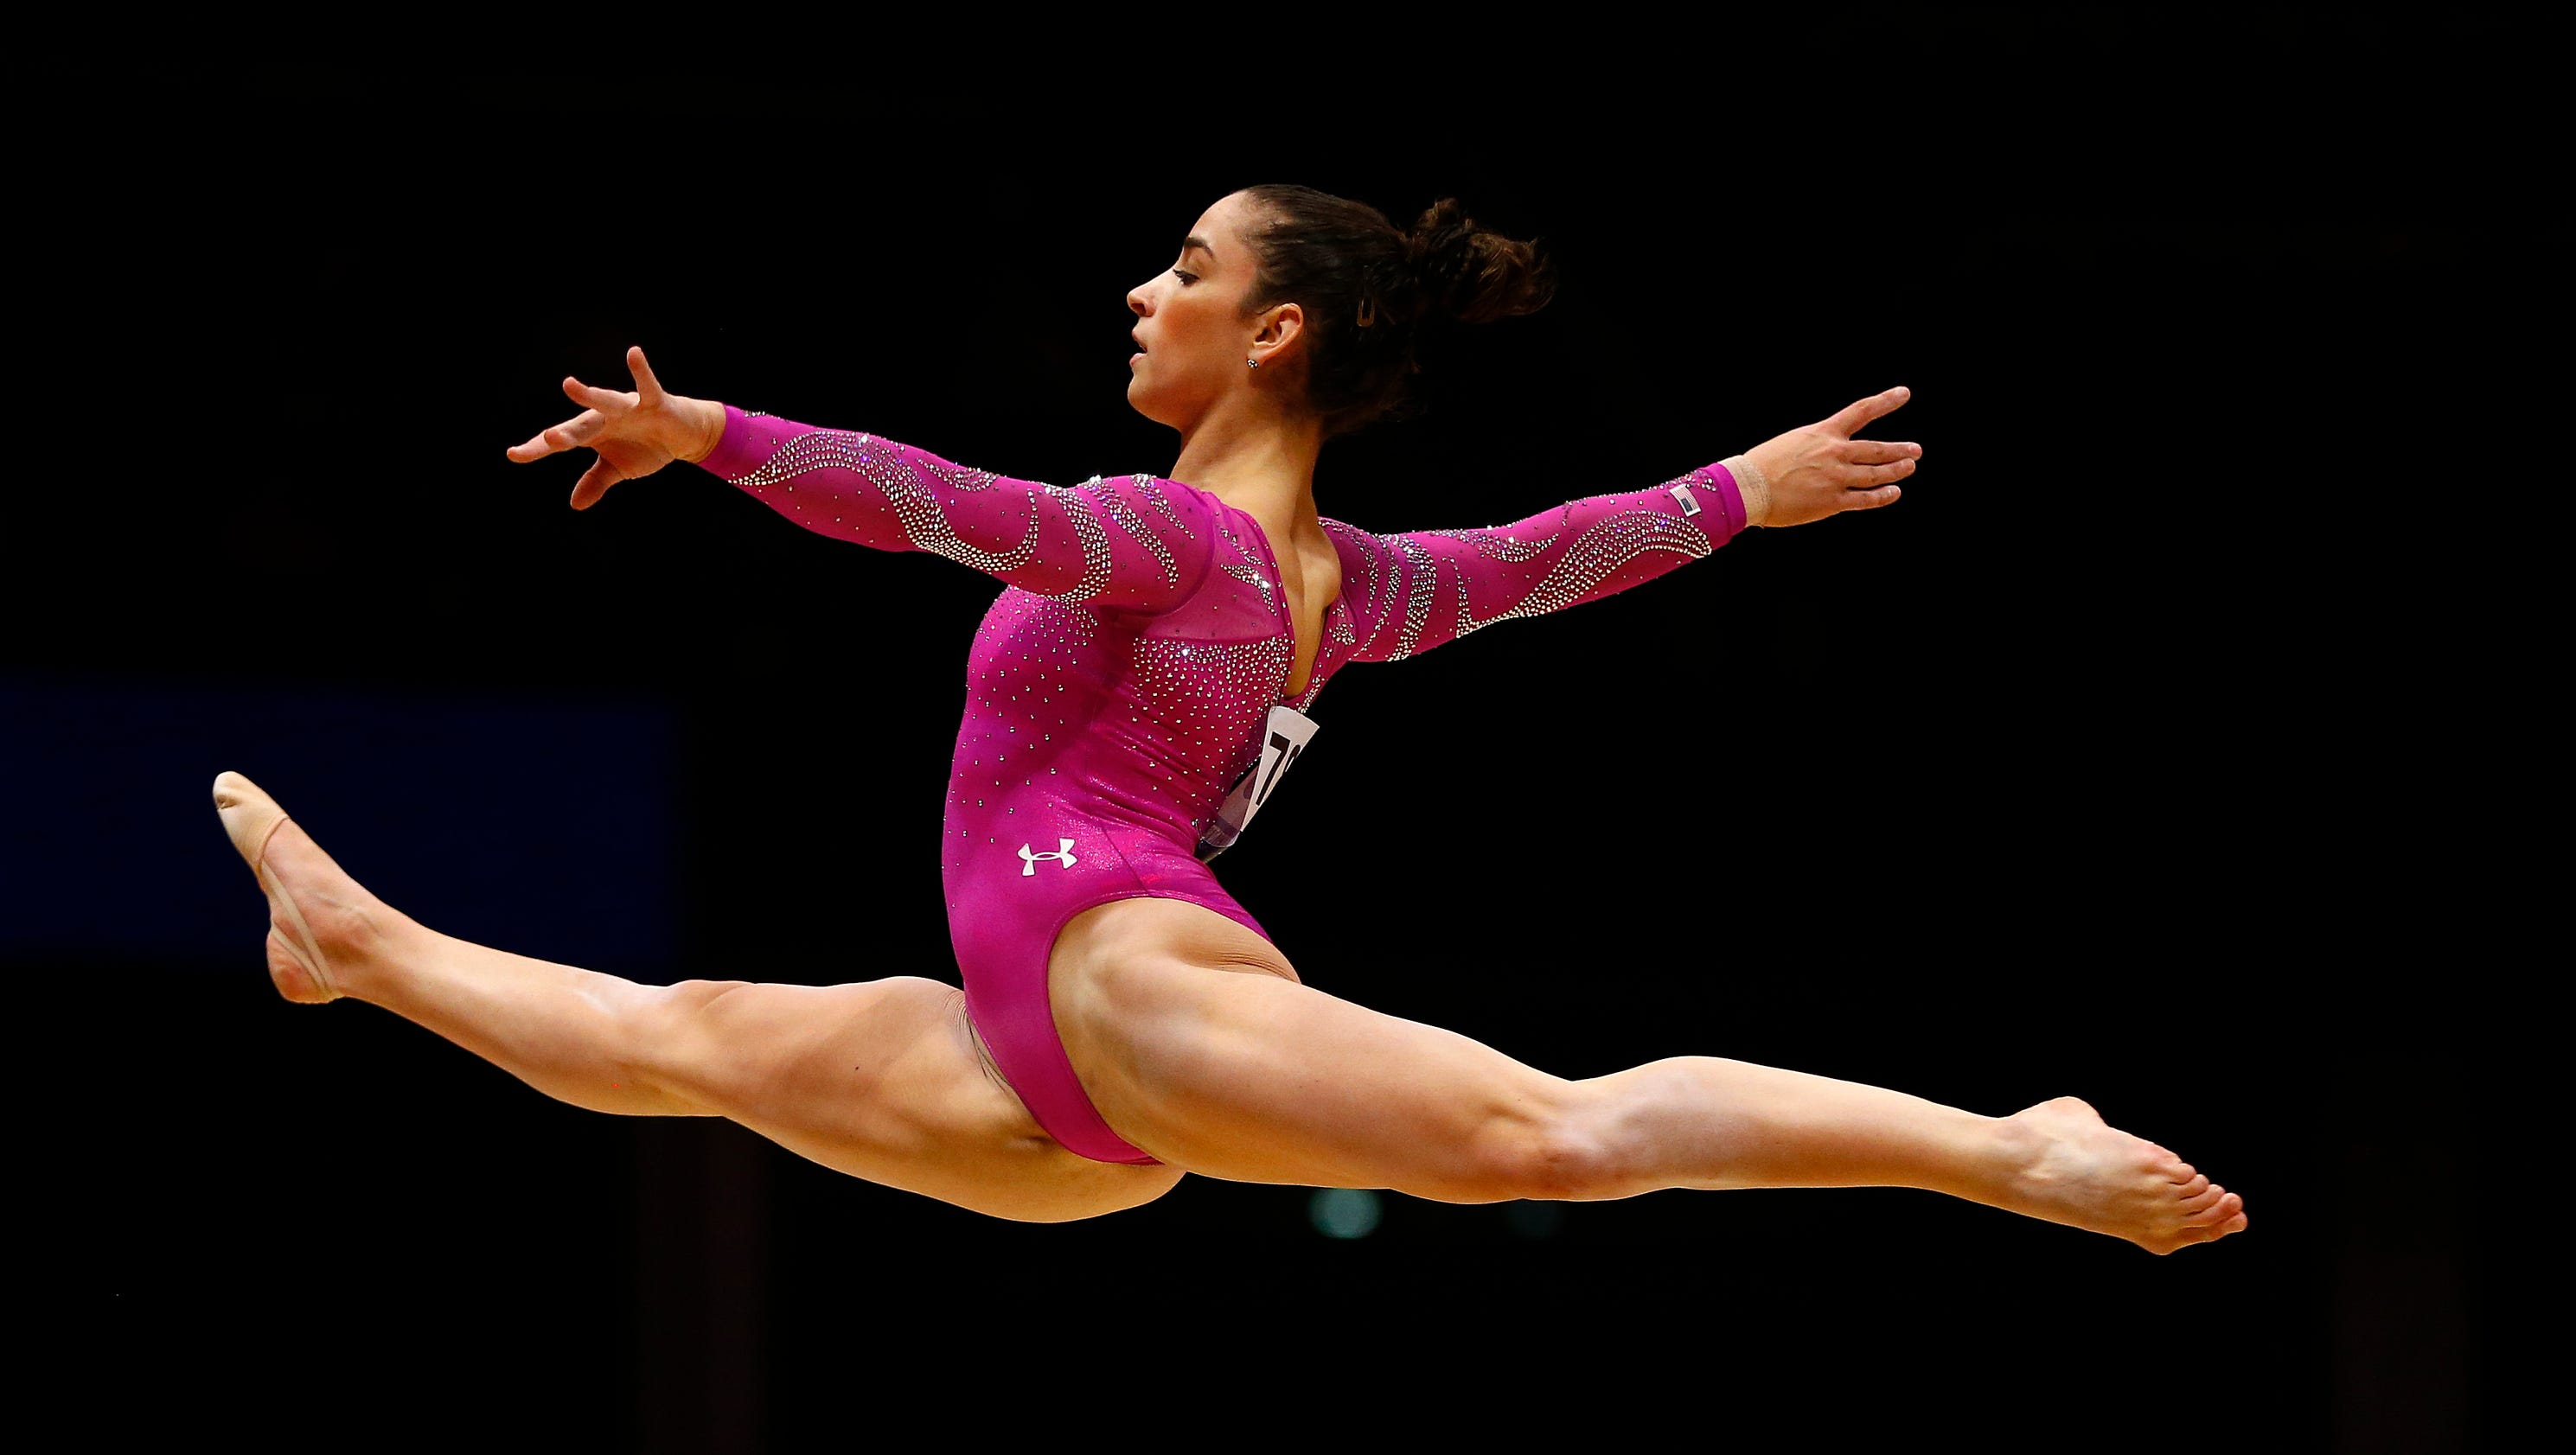 USA's Aly Raisman finishes disappointing fifth in worlds ...